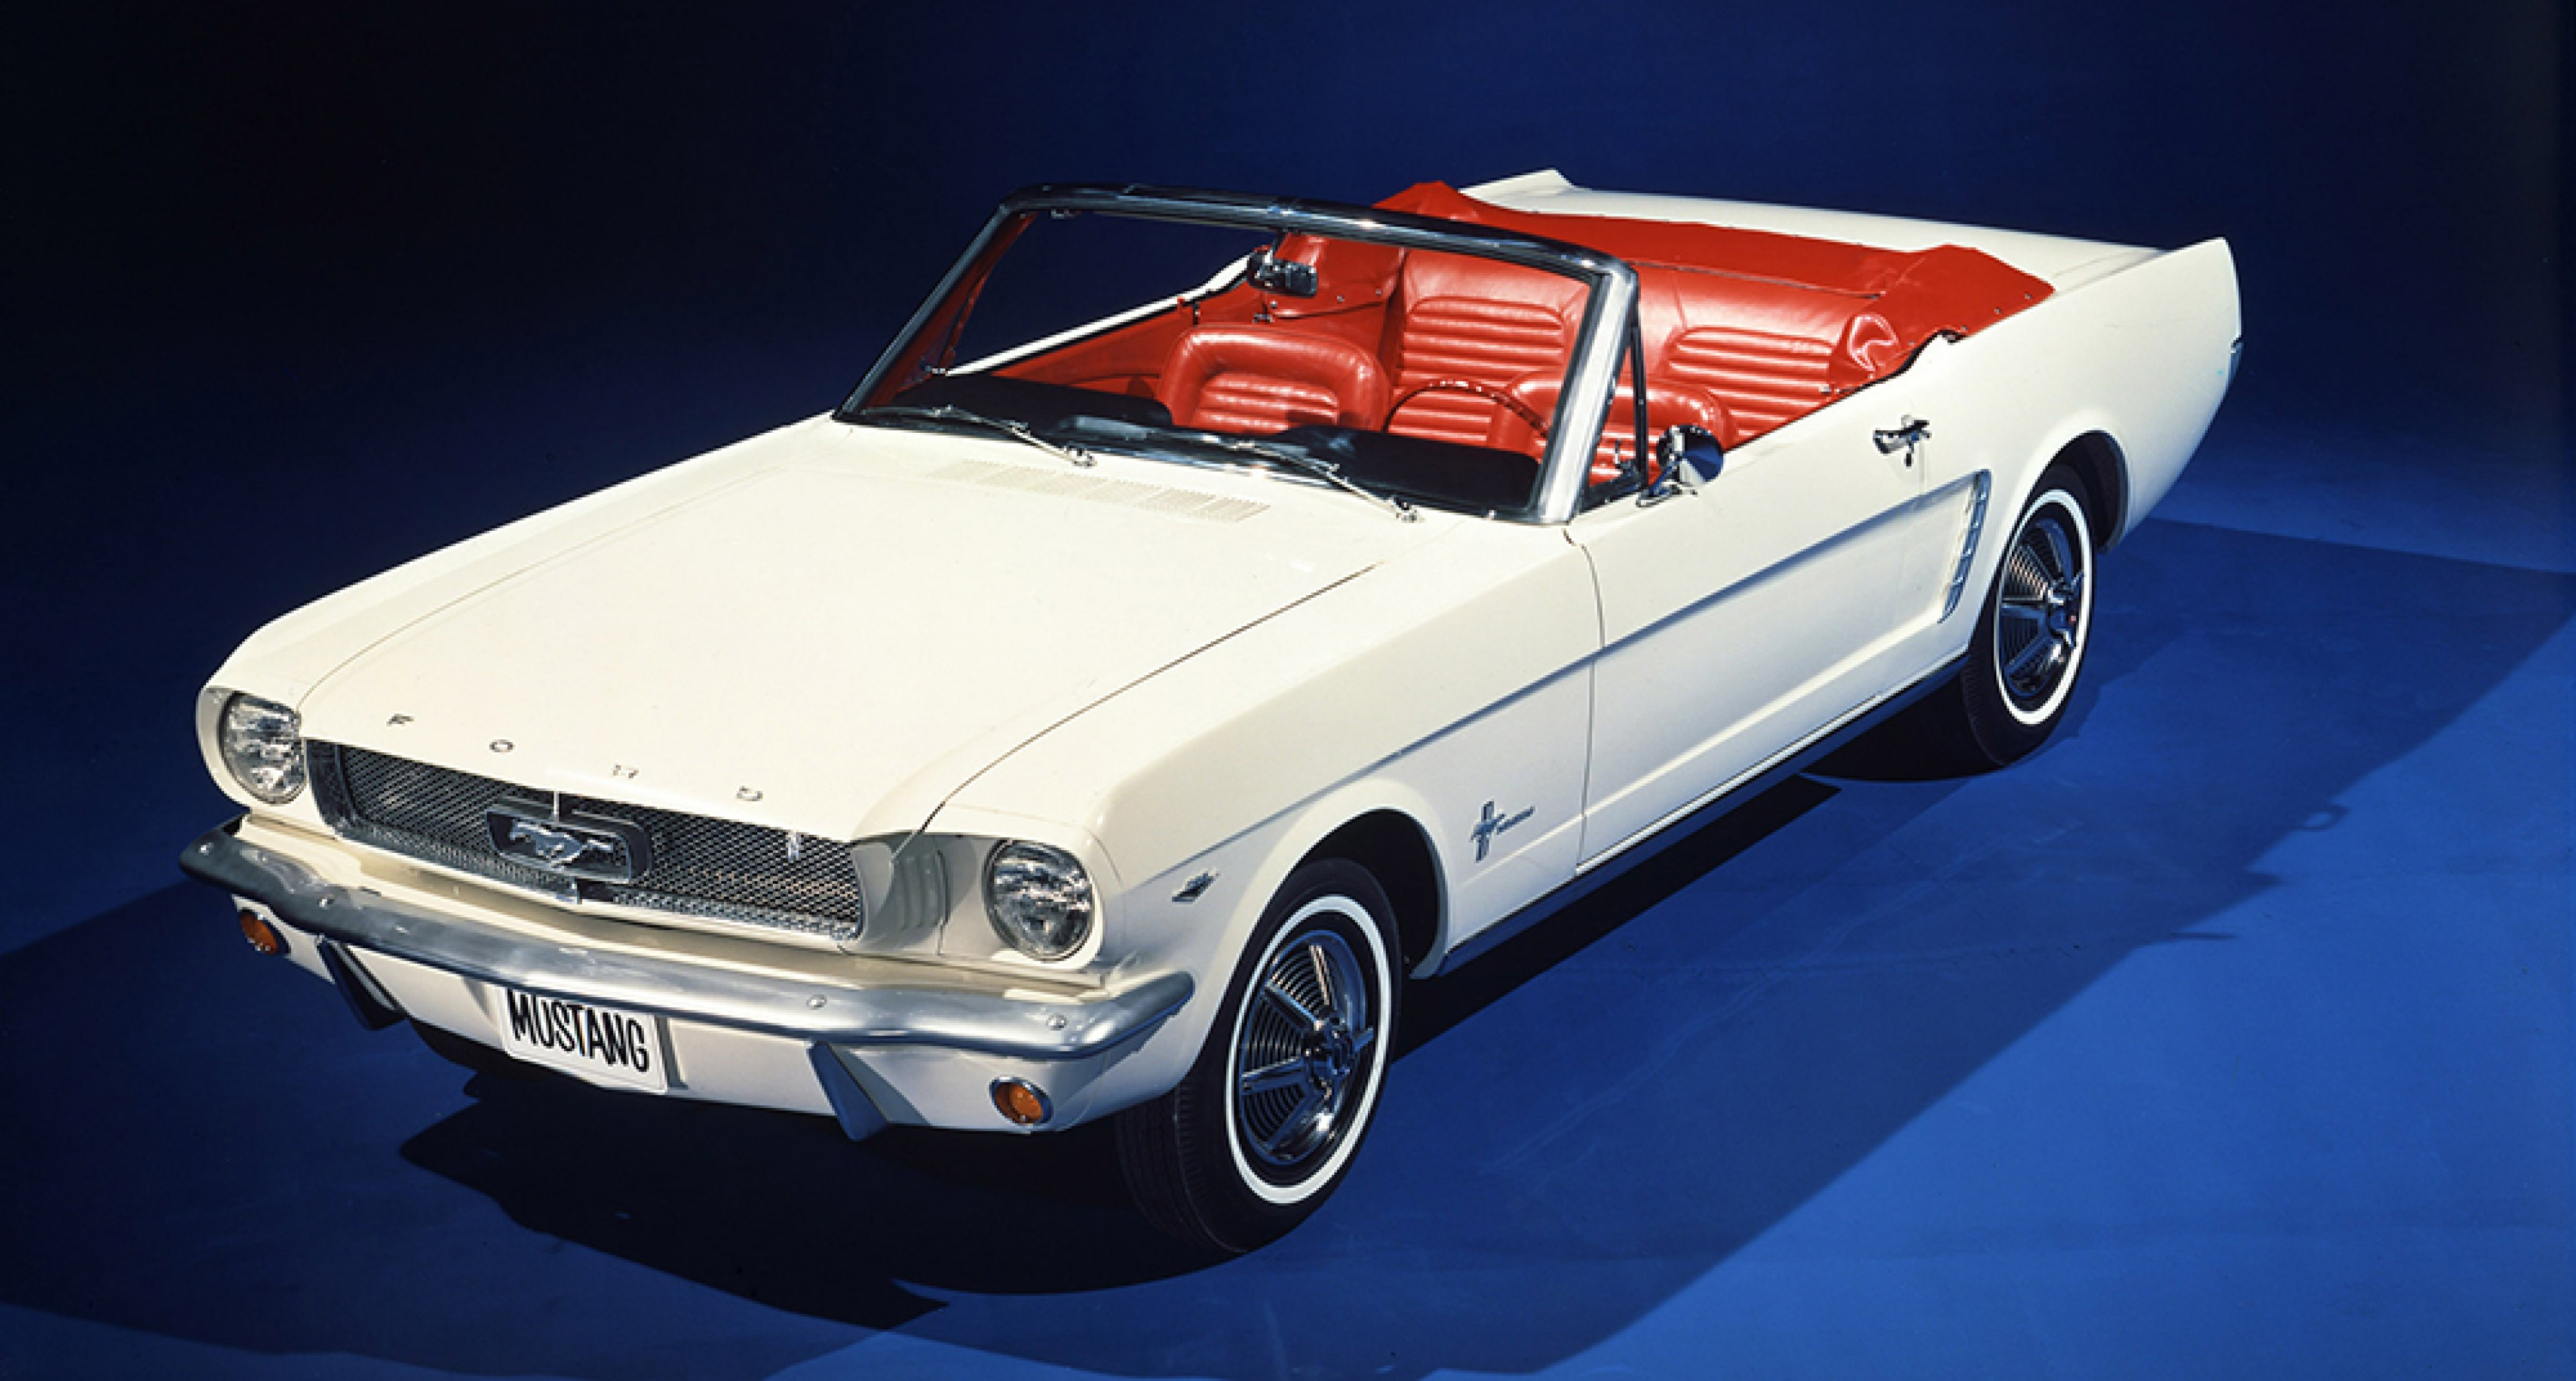 Birth of an icon - the 1964 Ford Mustang Convertible.